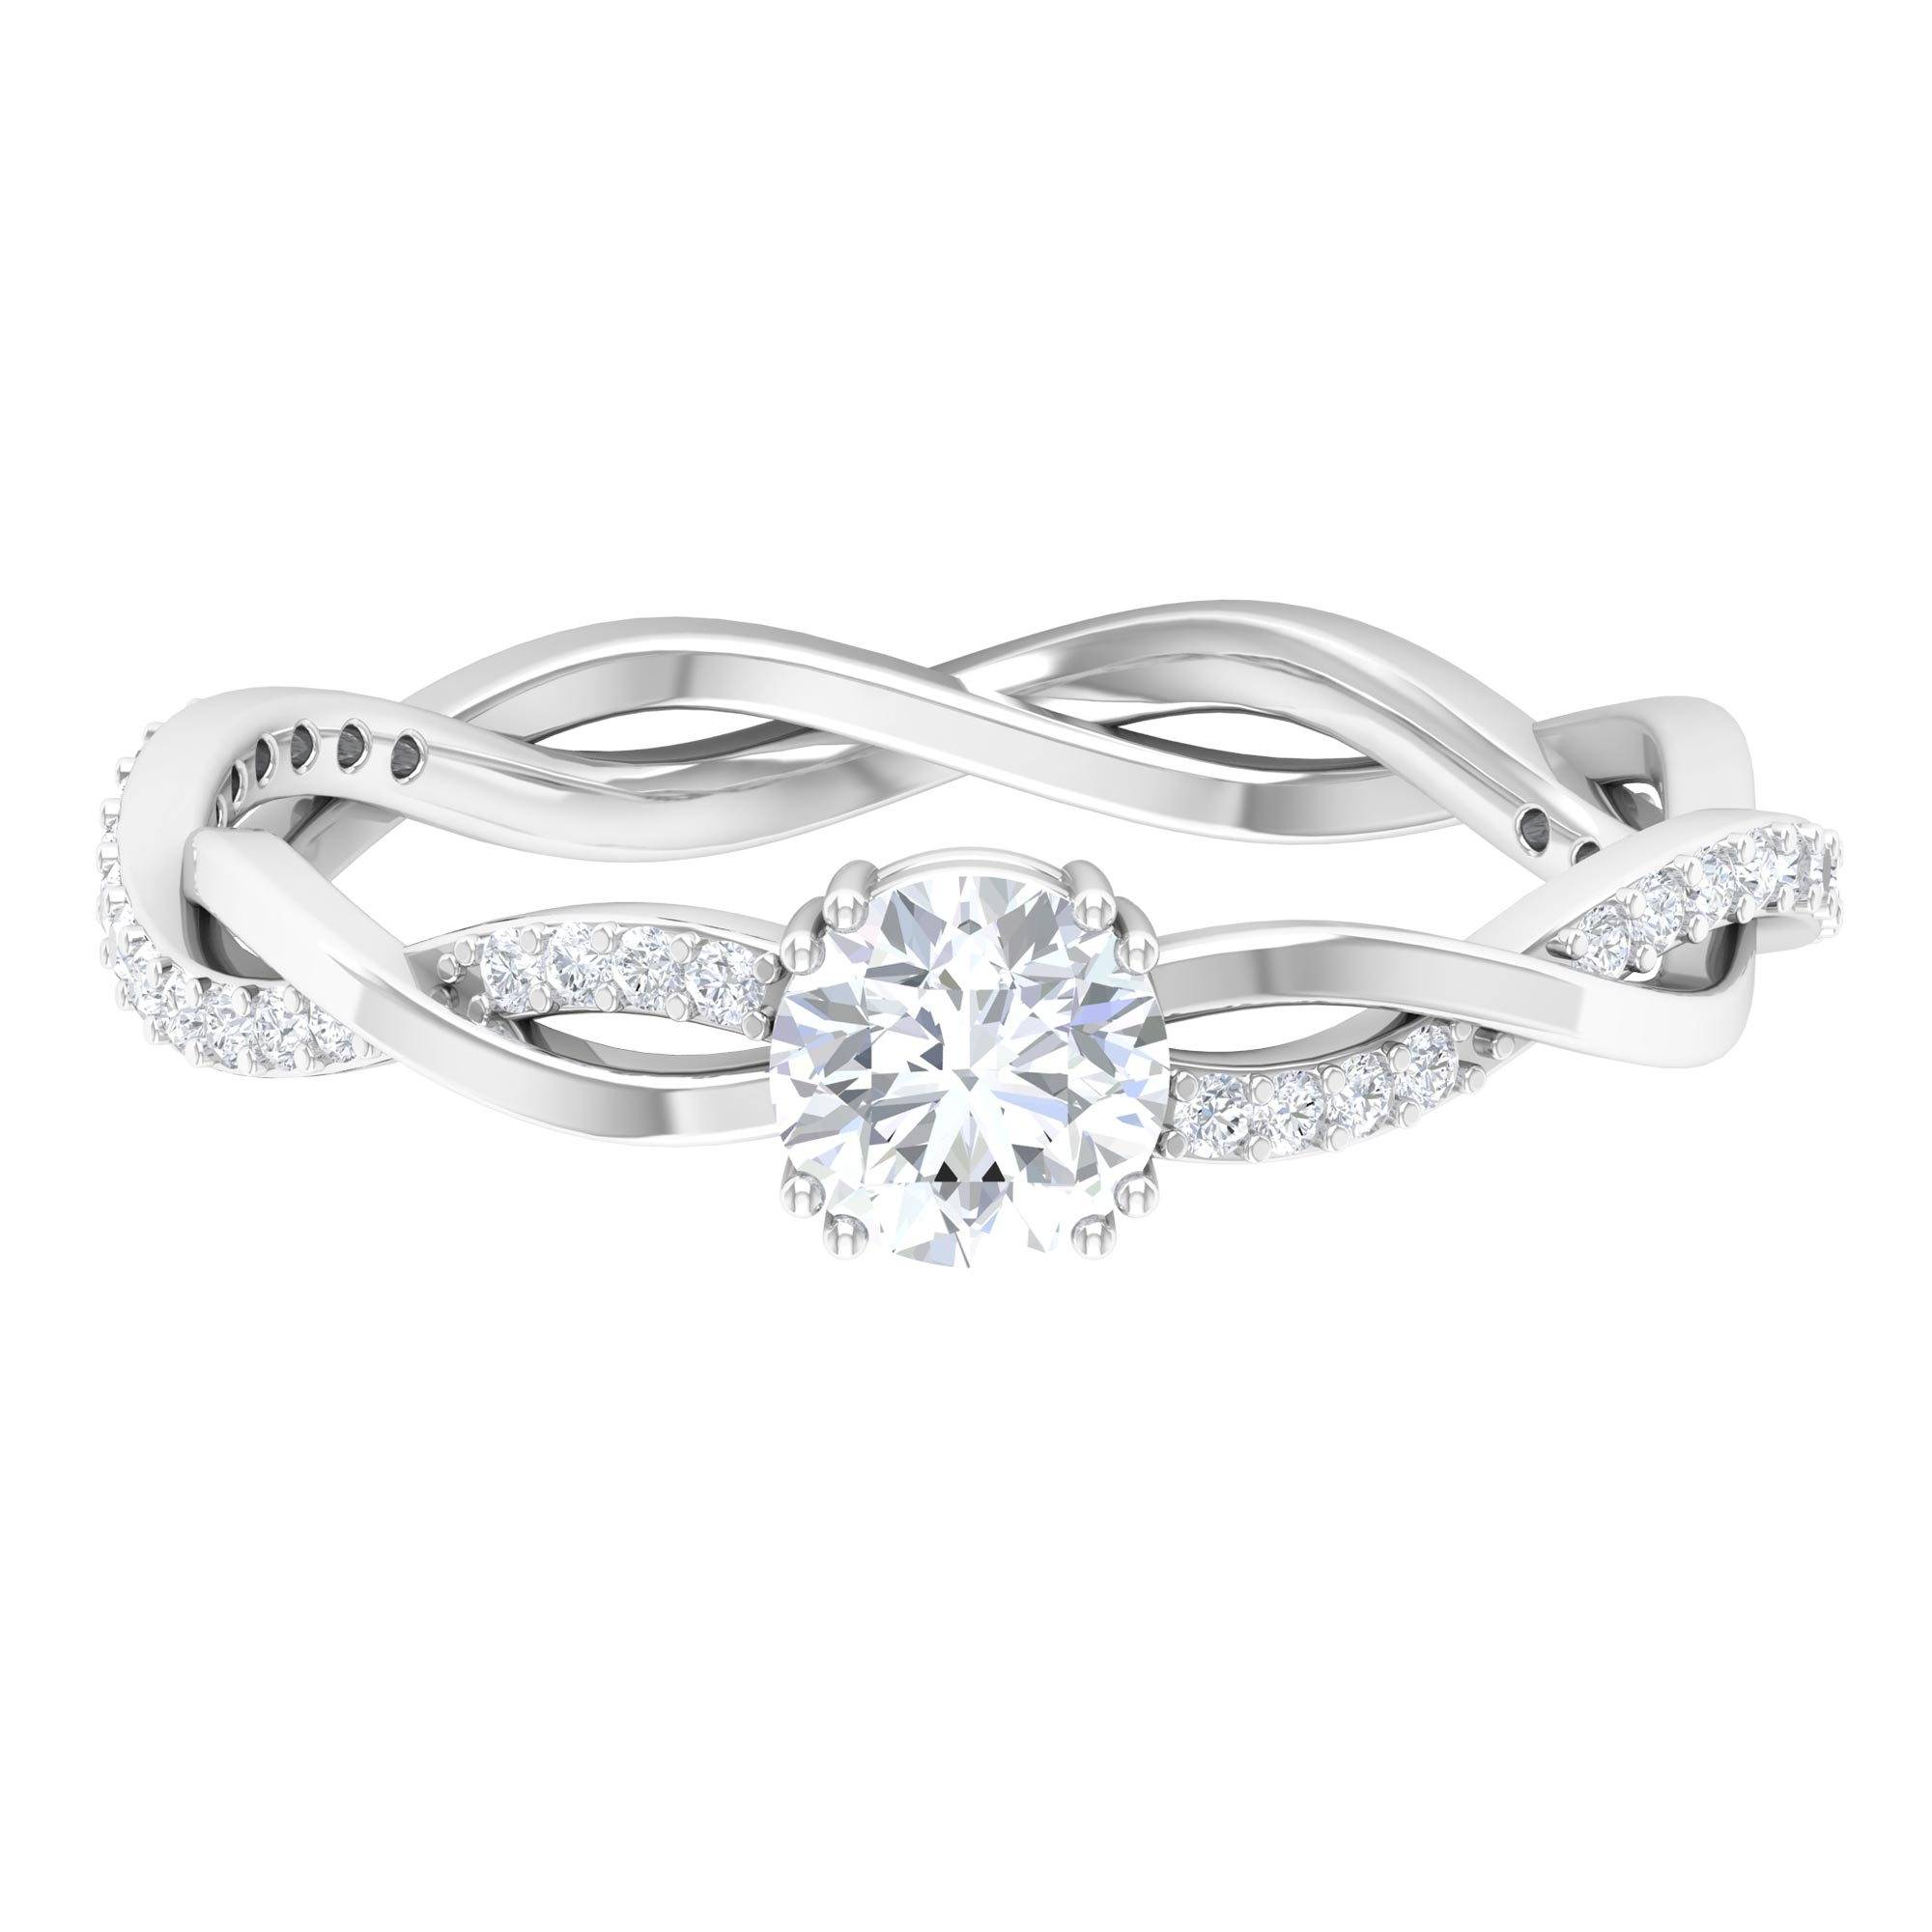 5 MM Round Cut Diamond Solitaire Braided Ring in Double Prong Set